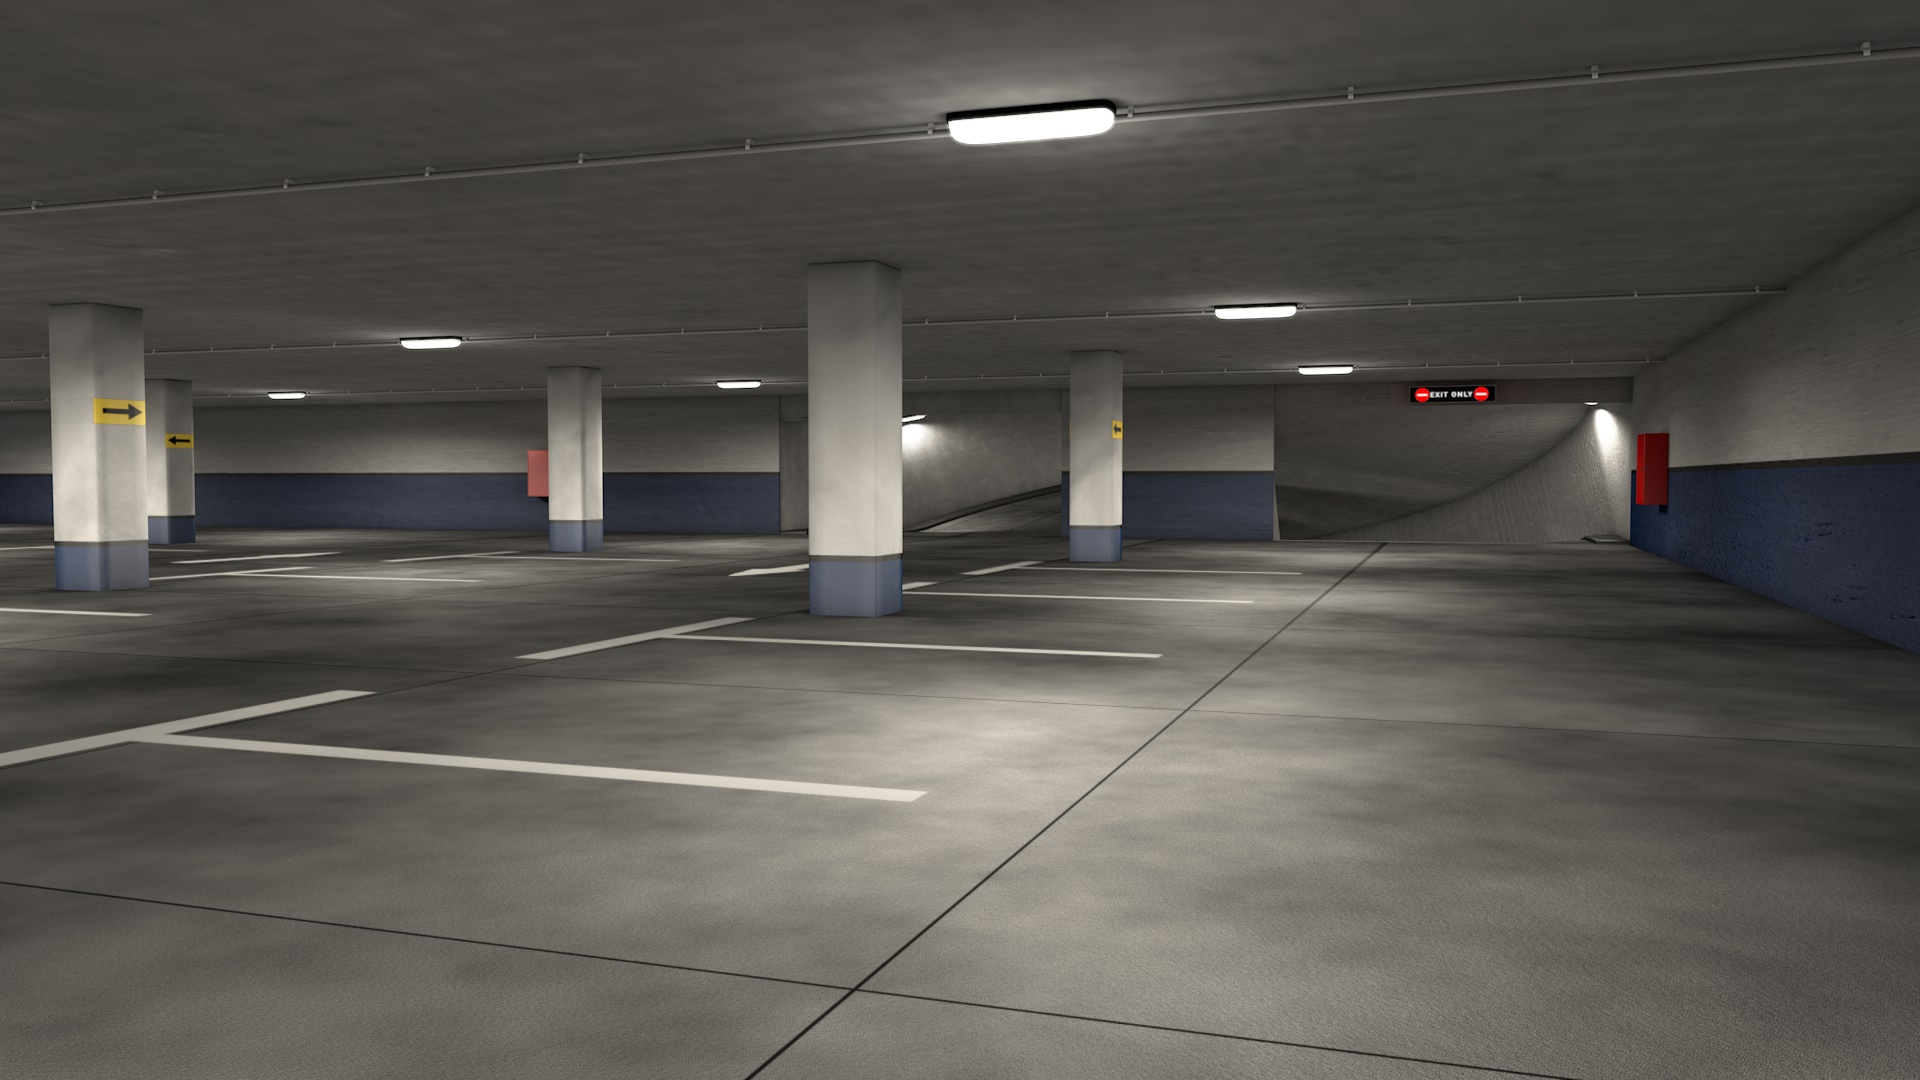 Parking Garage By 3dtreatment 3docean